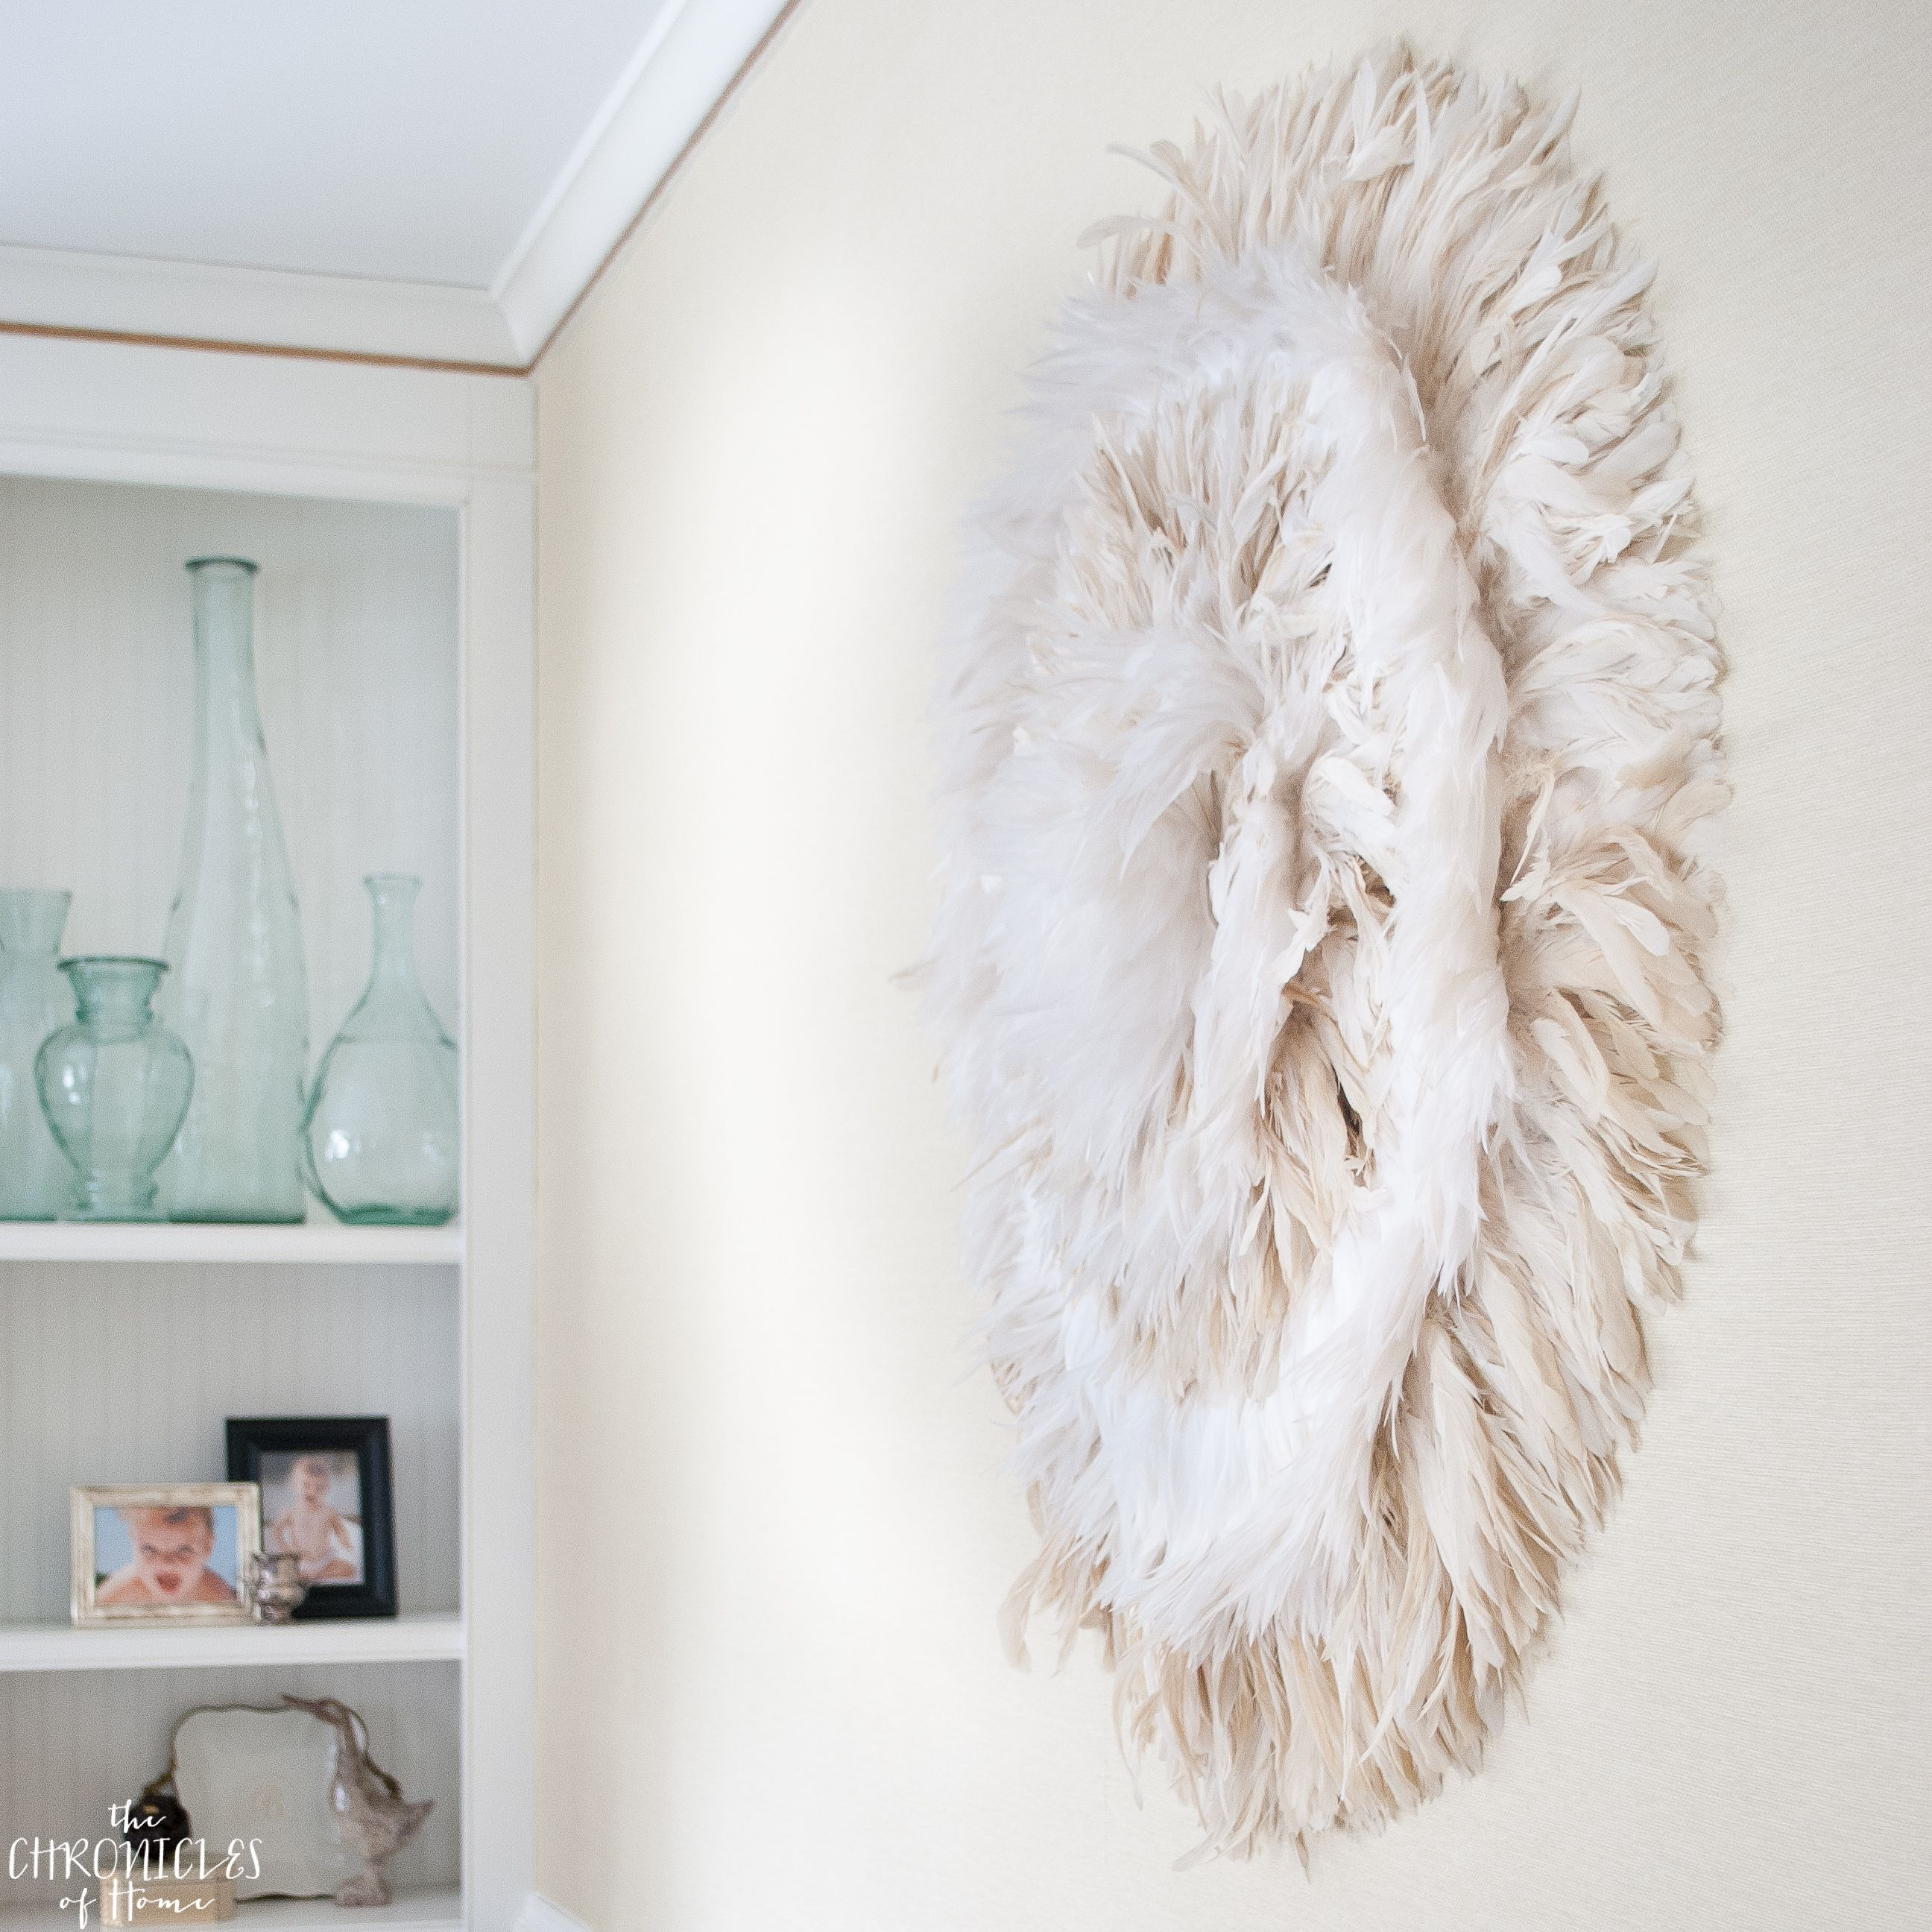 Diy Juju Hat Feather Wall Hanging Home Blogger Decor